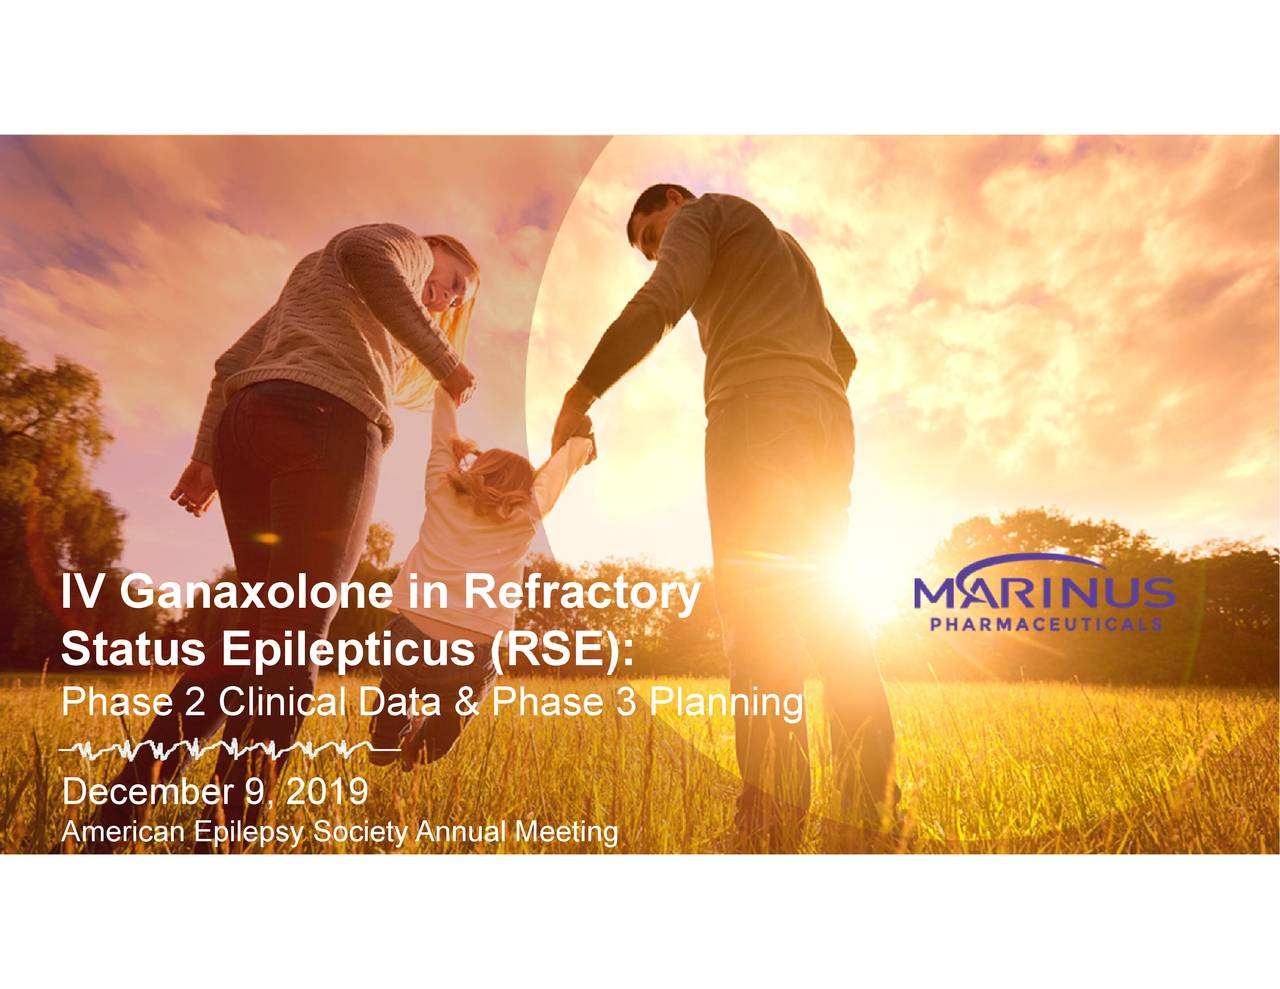 Marinus Pharmaceuticals (MRNS) Presents At American Epilepsy Society 2019 Annual Meeting - Slideshow - Marinus Pharmaceuticals, Inc. (NASDAQ:MRNS) | Seeking Alpha